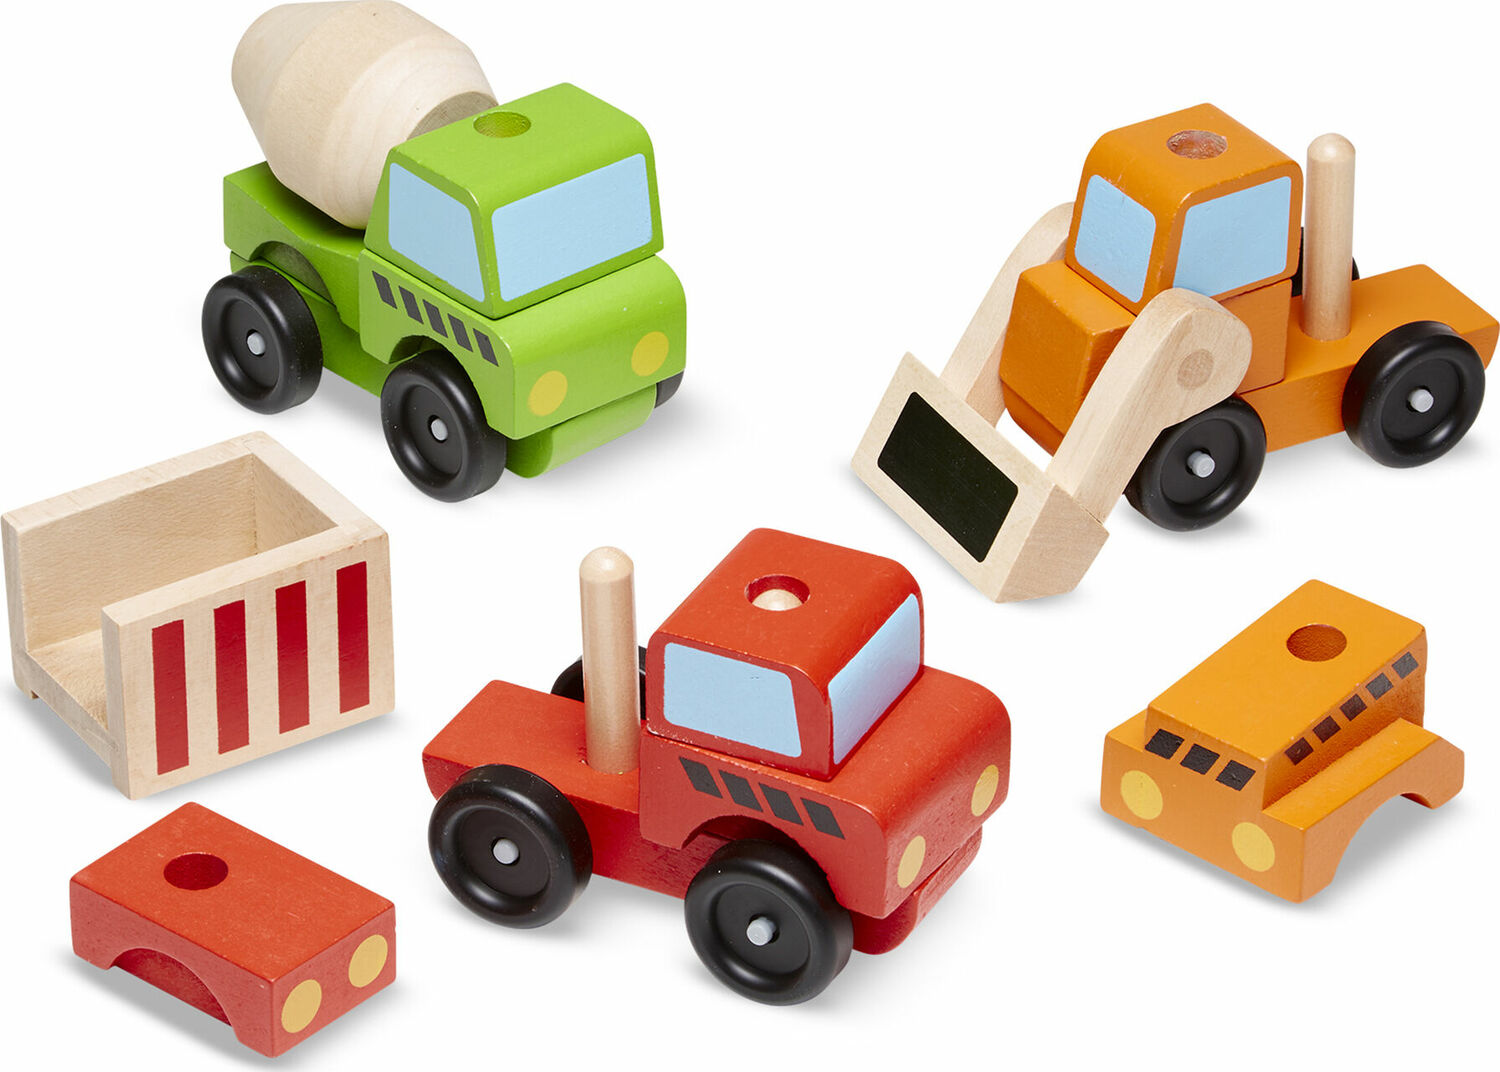 stacking construction vehicles - the wooden toy